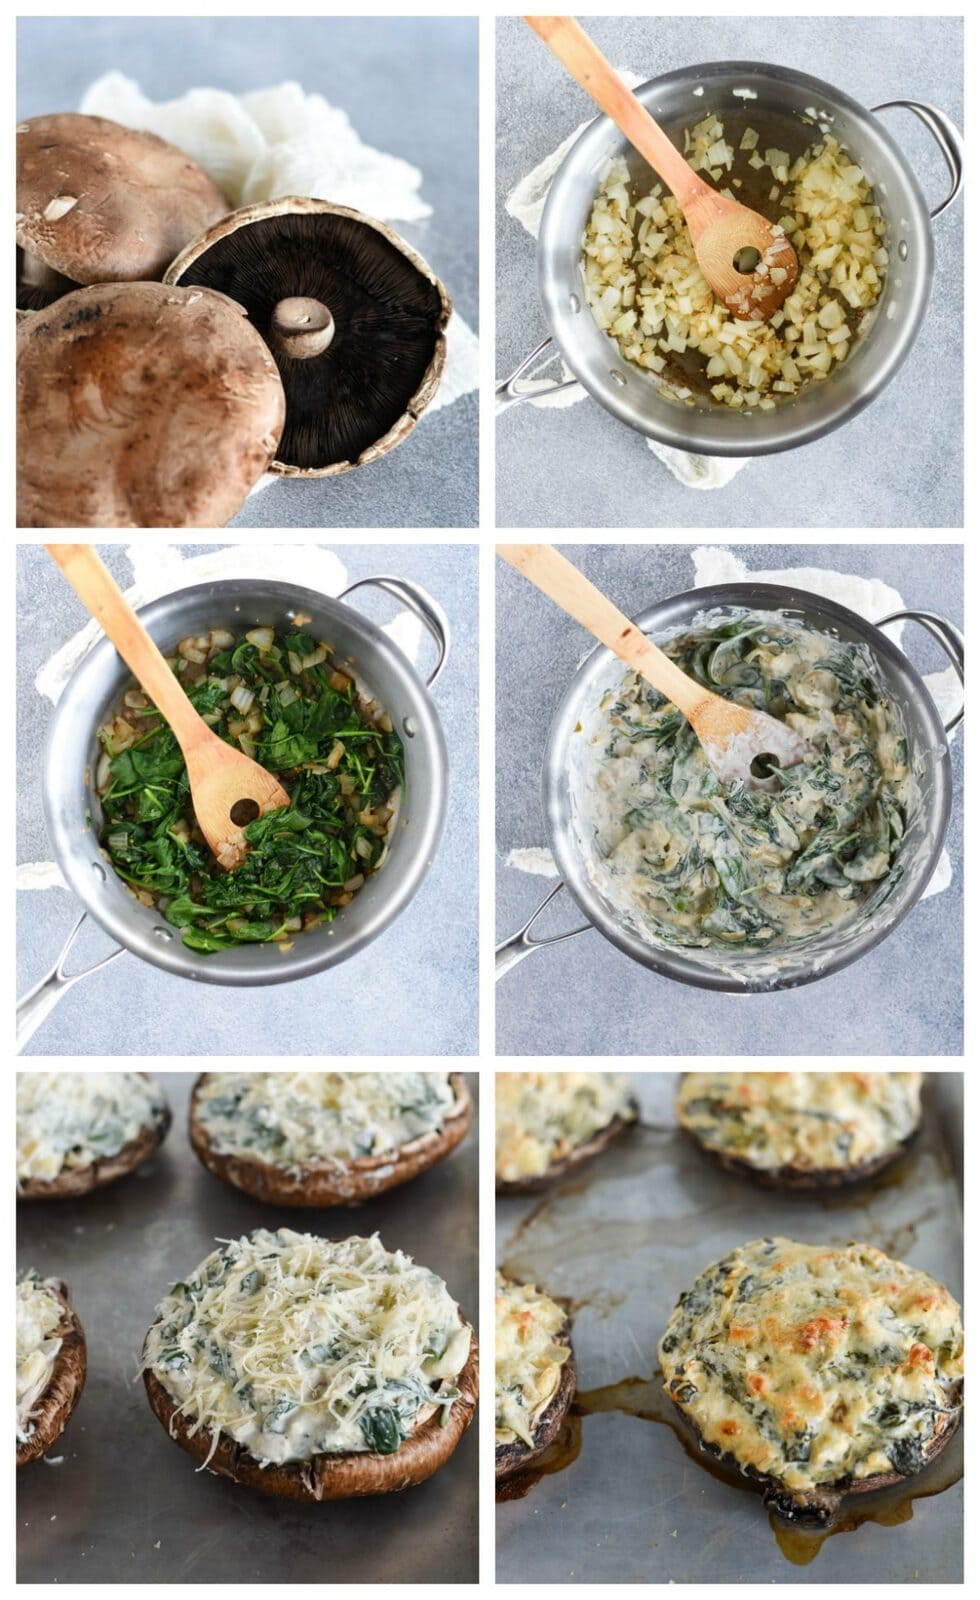 stuffed portobello mushrooms step by step instructions